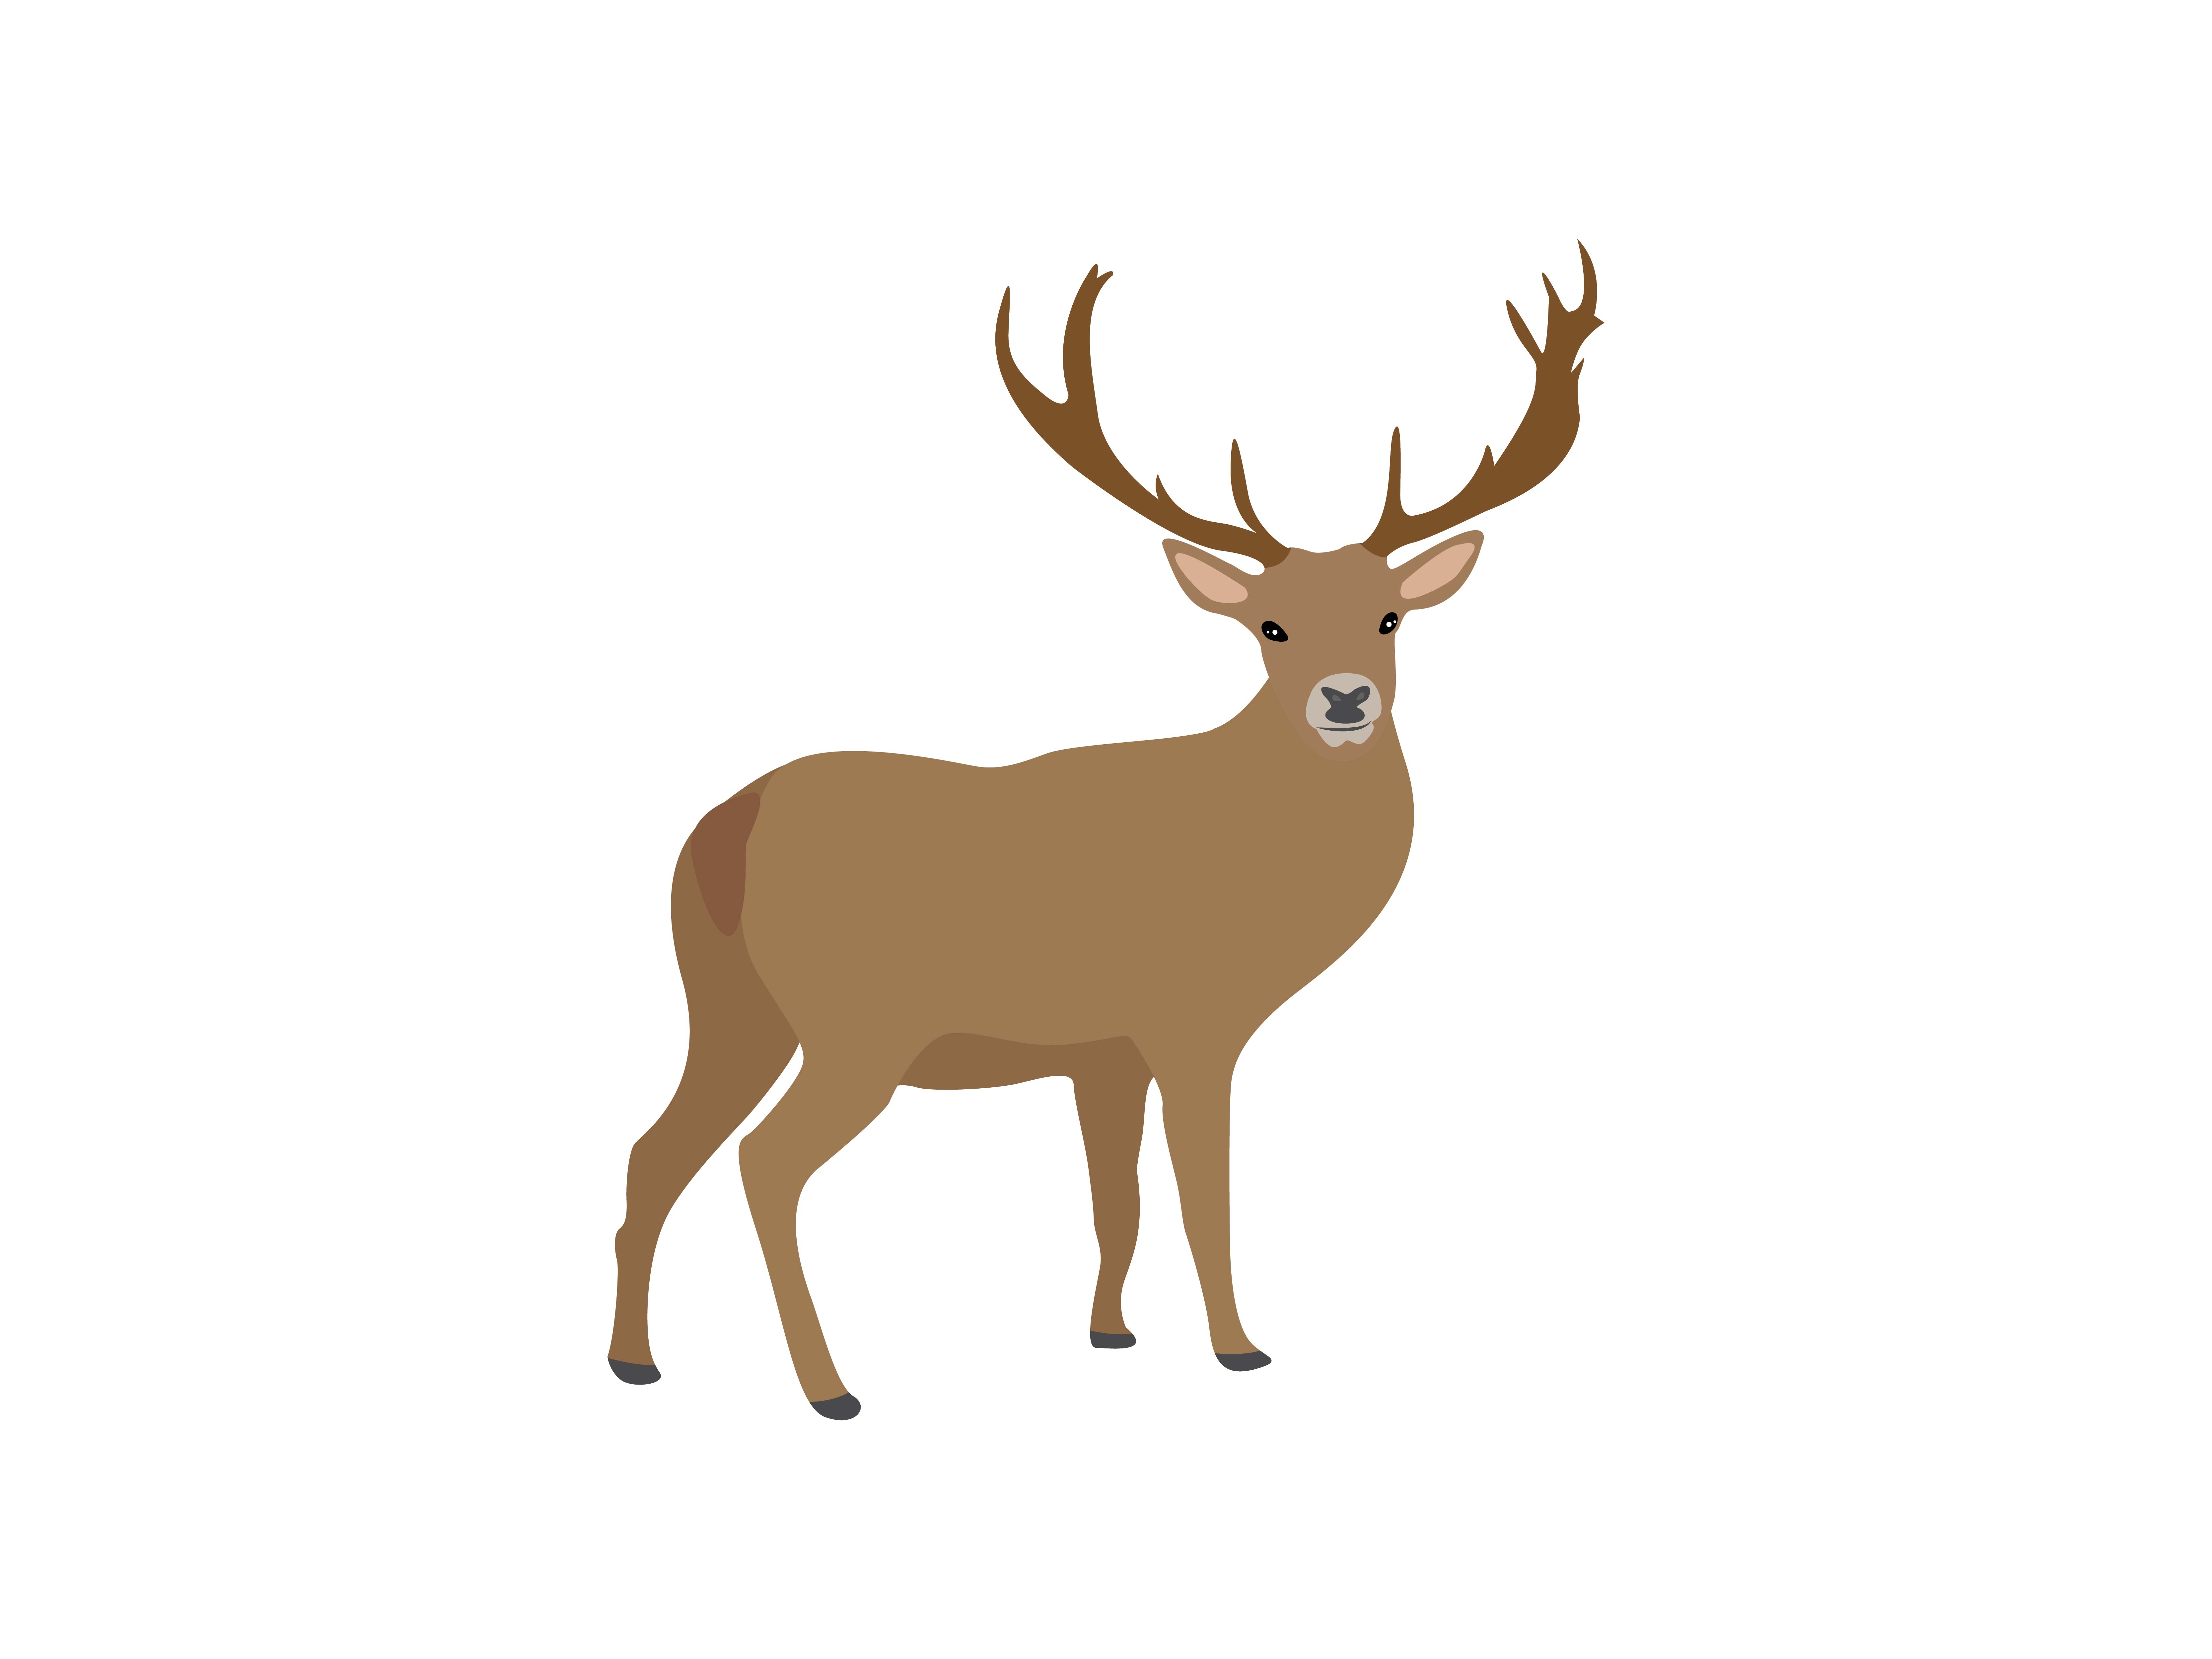 Download Free Deer Animal Graphic By Archshape Creative Fabrica for Cricut Explore, Silhouette and other cutting machines.